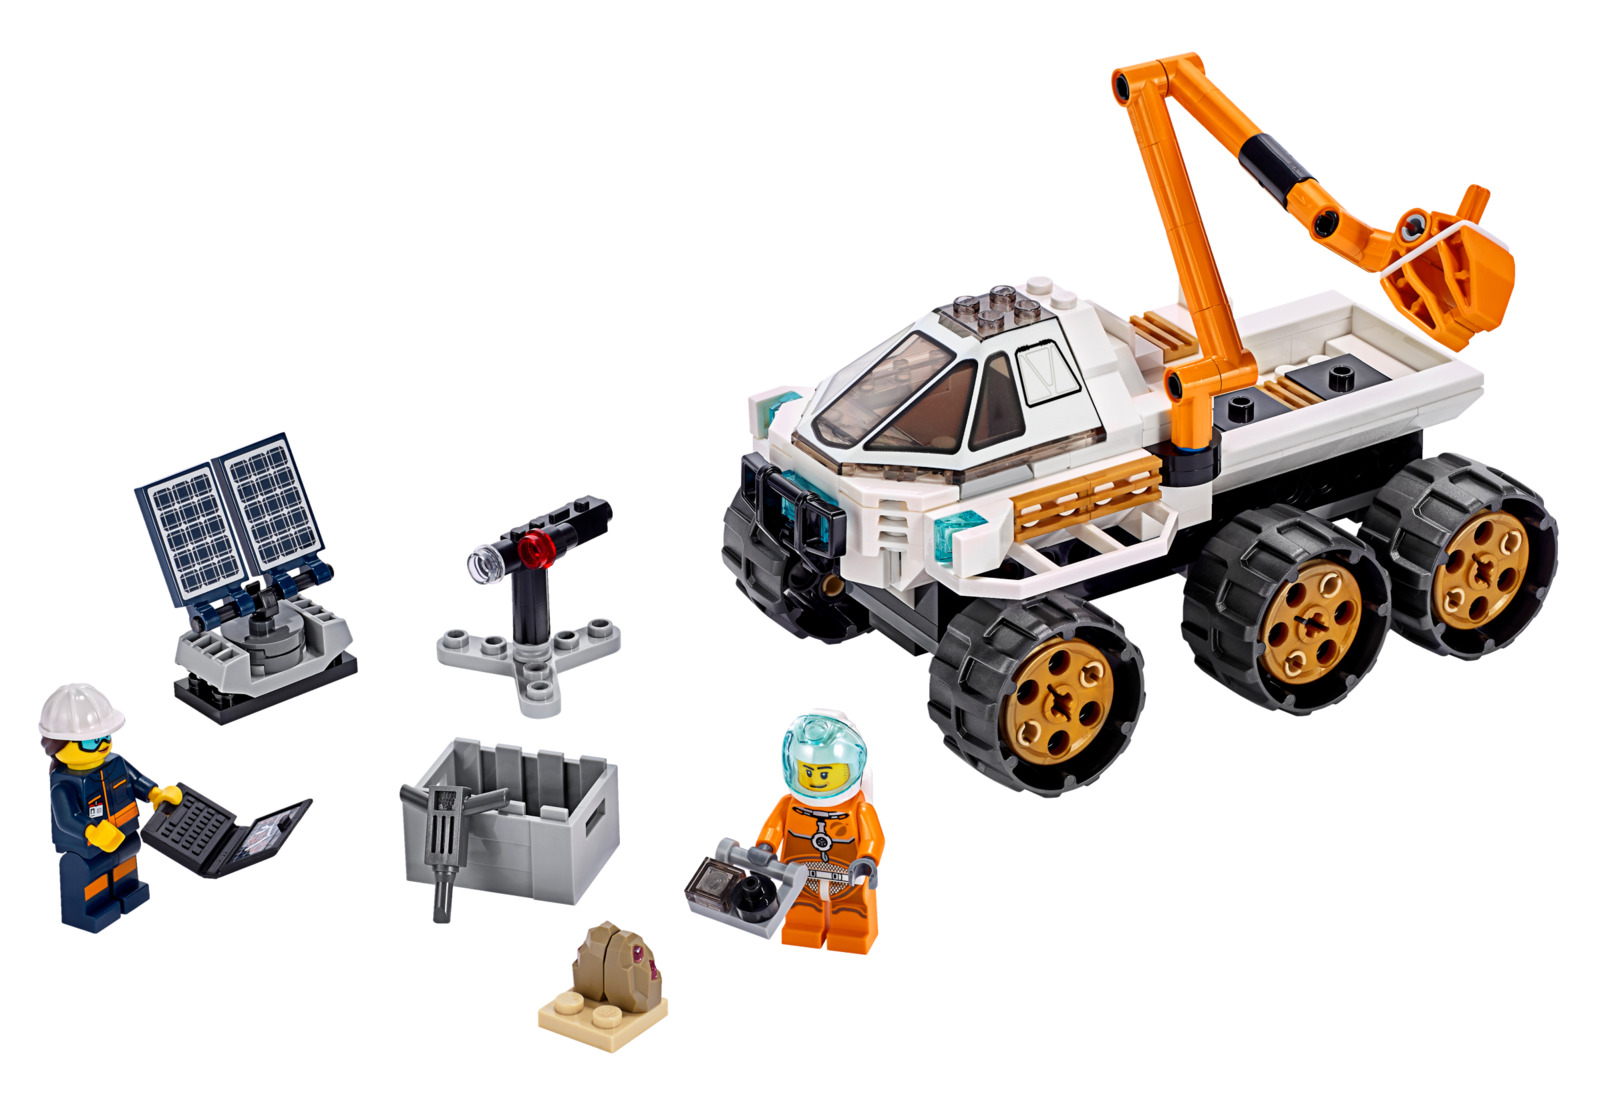 LEGO City: Rover Testing Drive - (60225) image